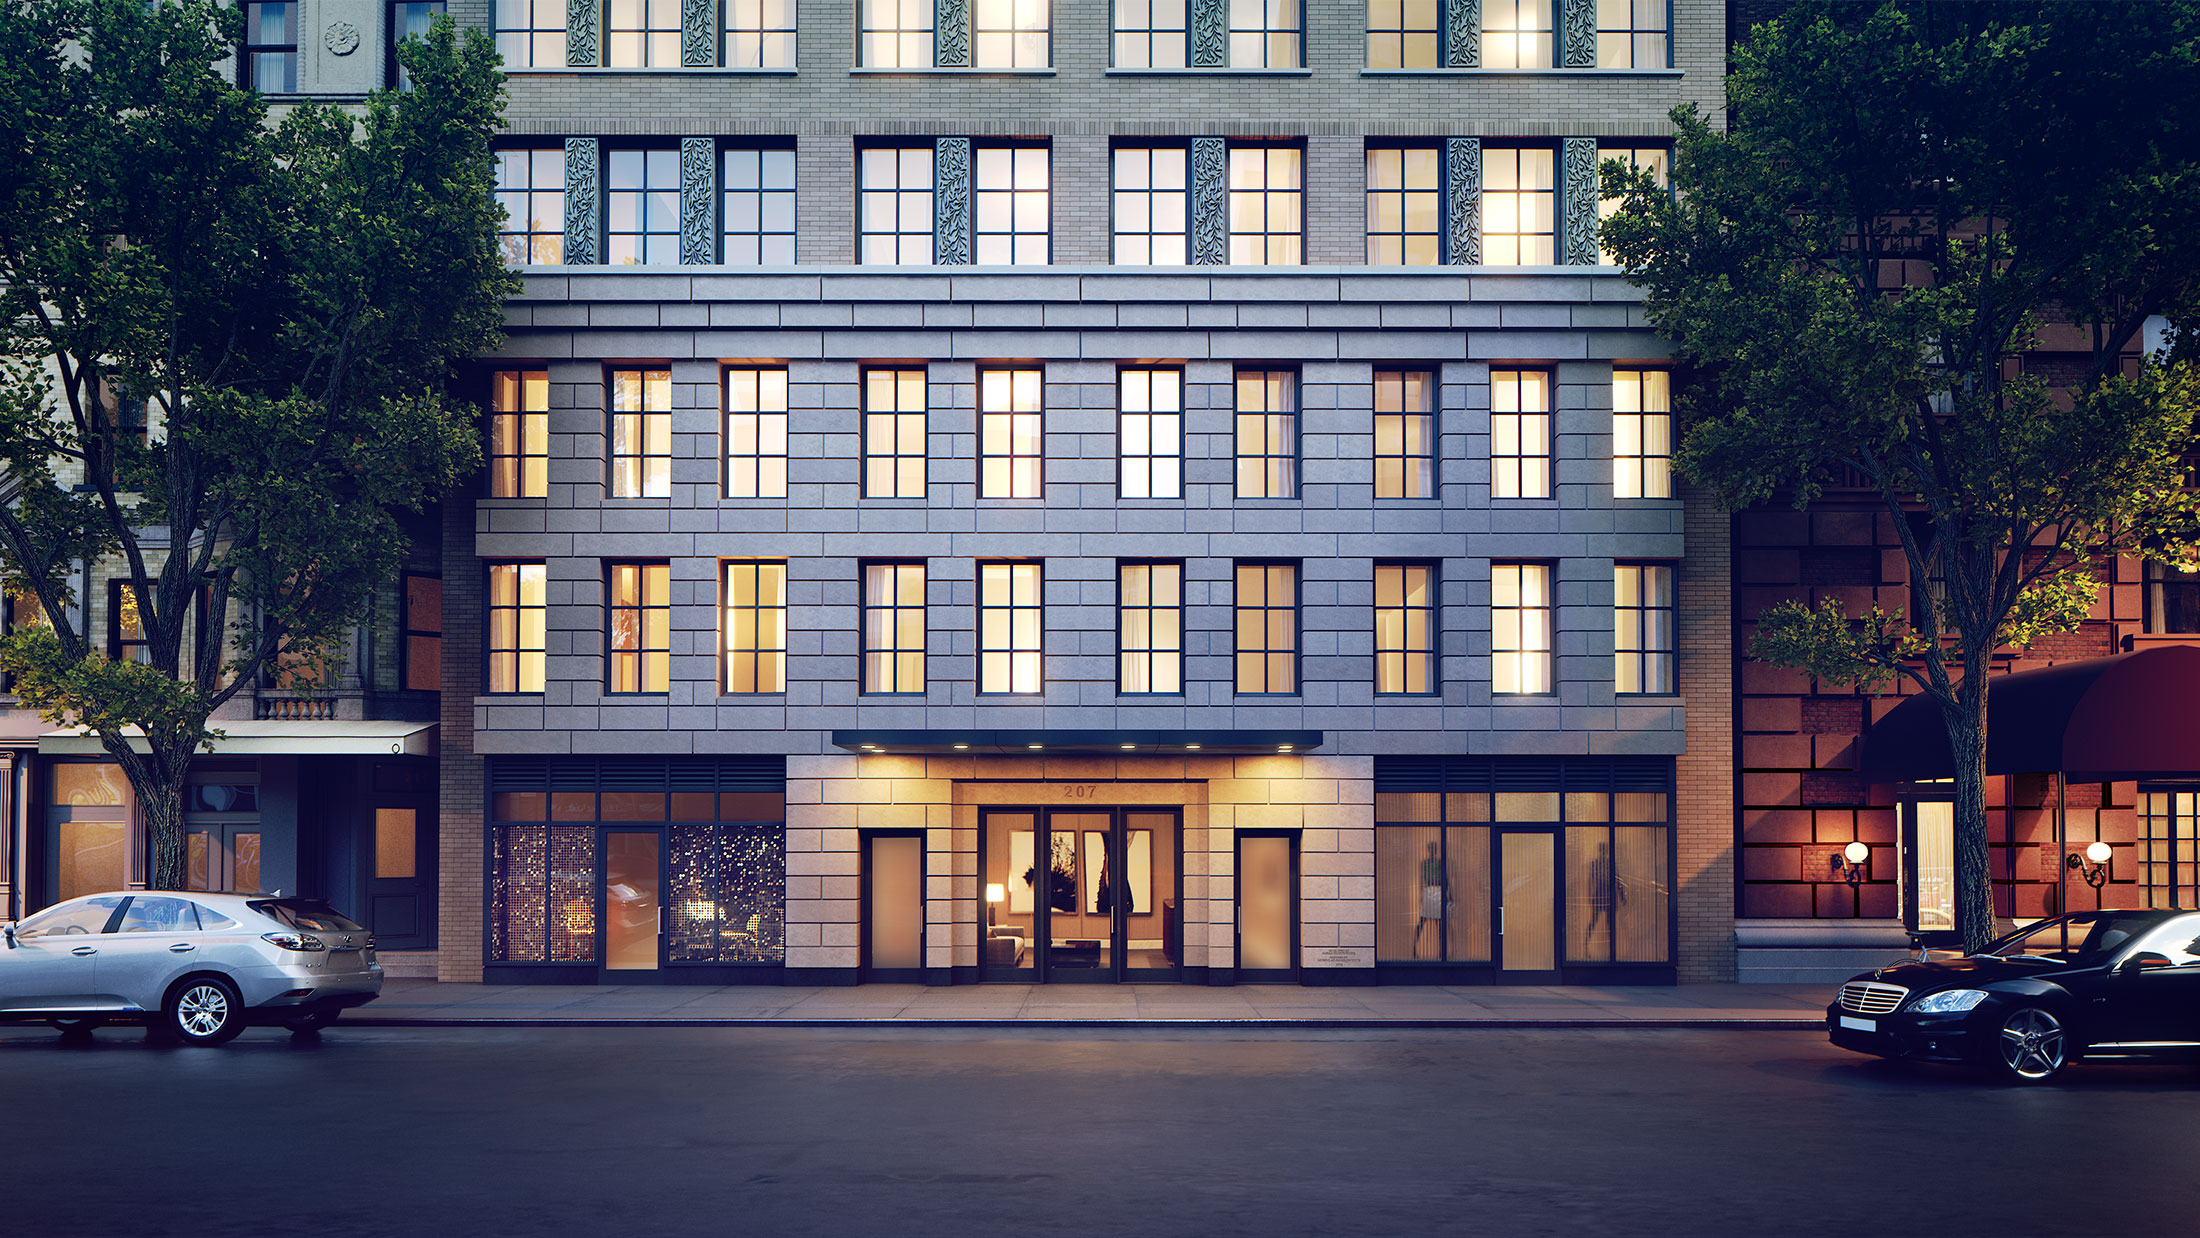 Architectural Rendering of the entrance of the 207 West 79th Street project located on the Upper West Side, New York City